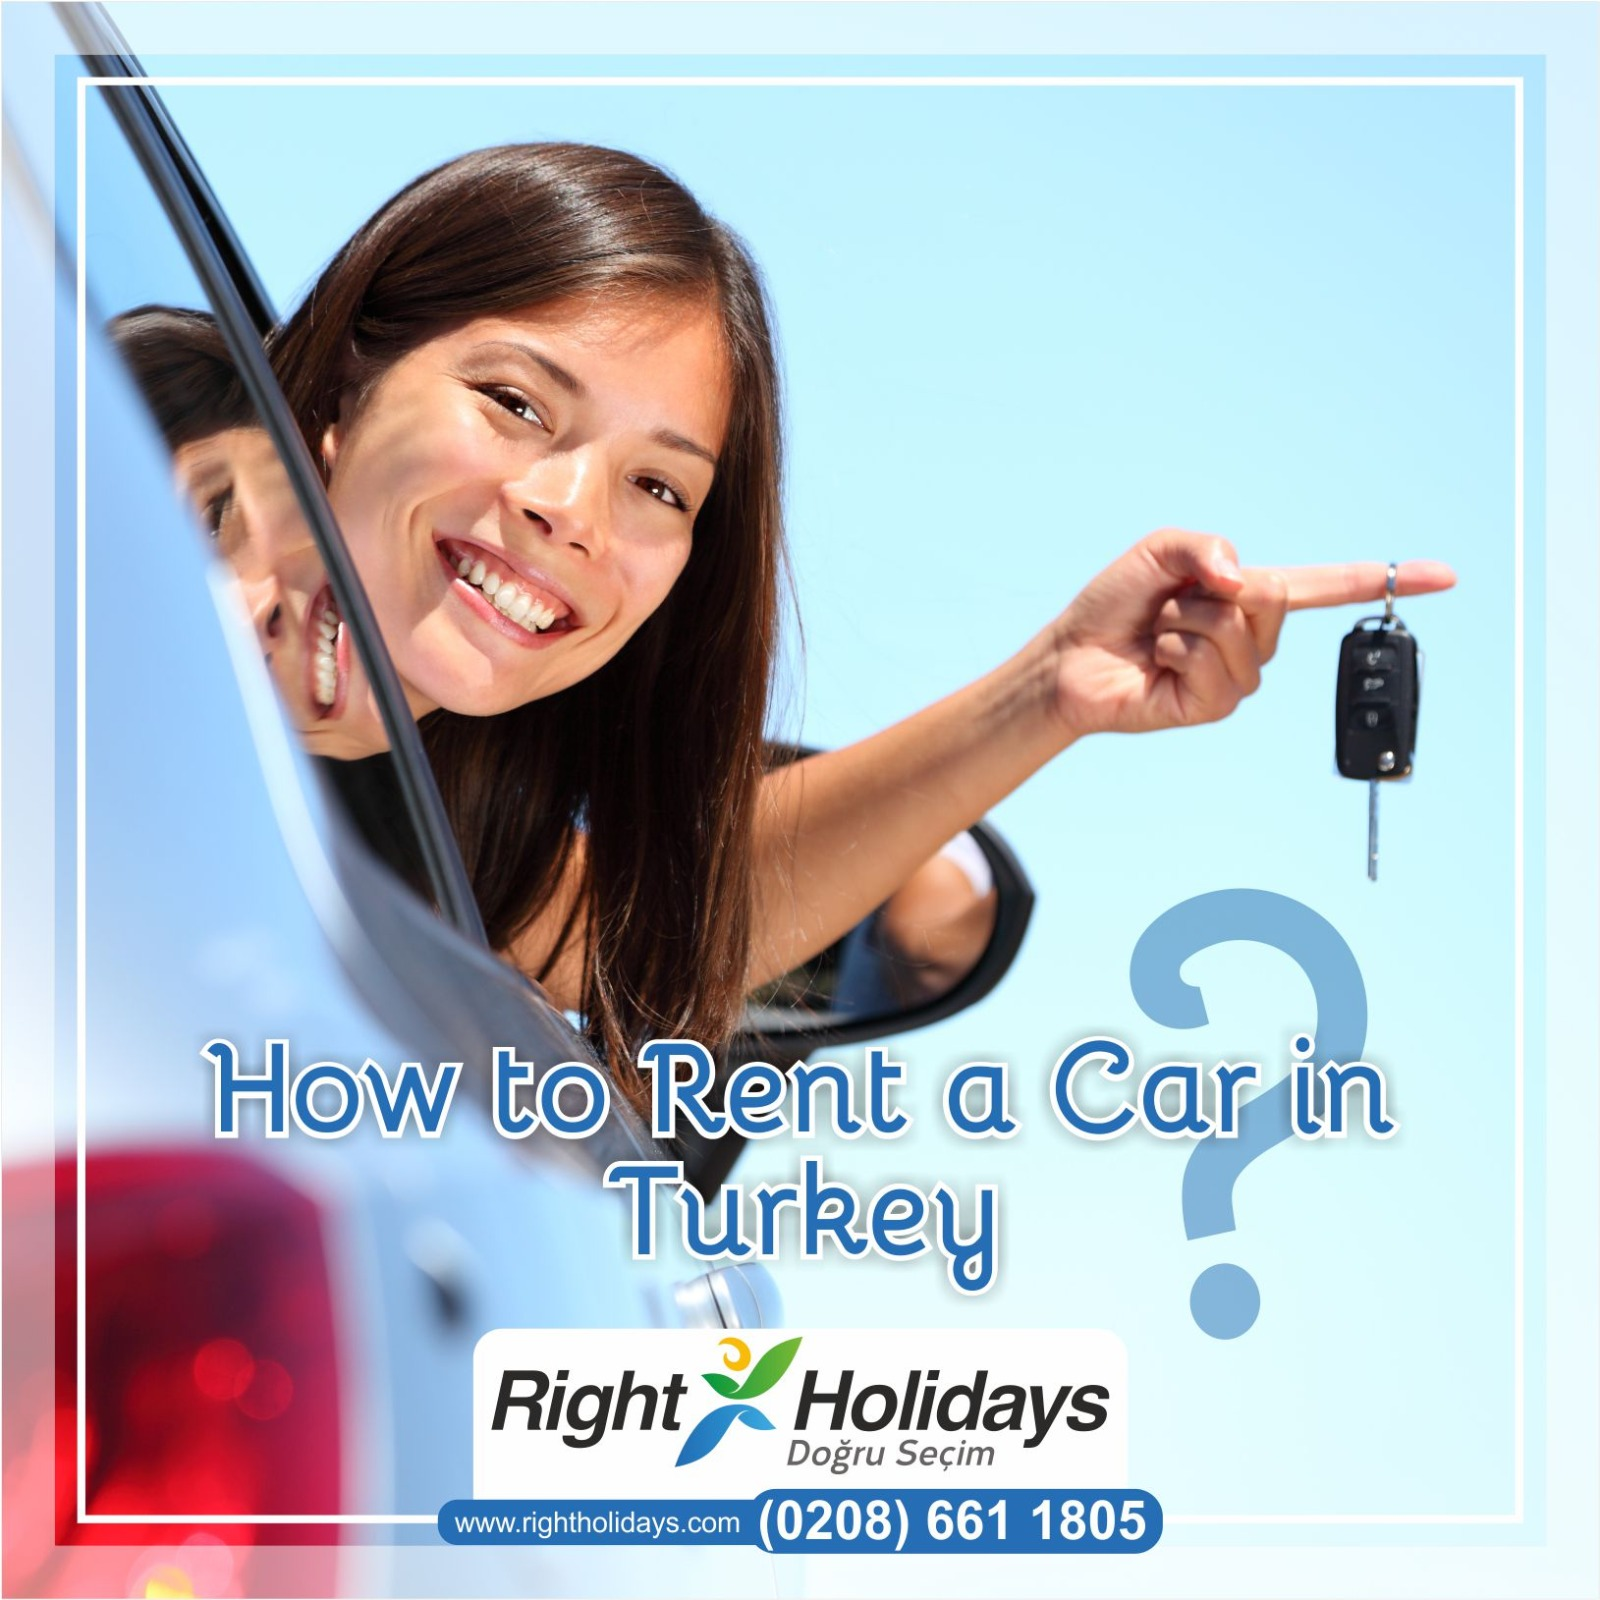 How to Rent a Car in Turkey